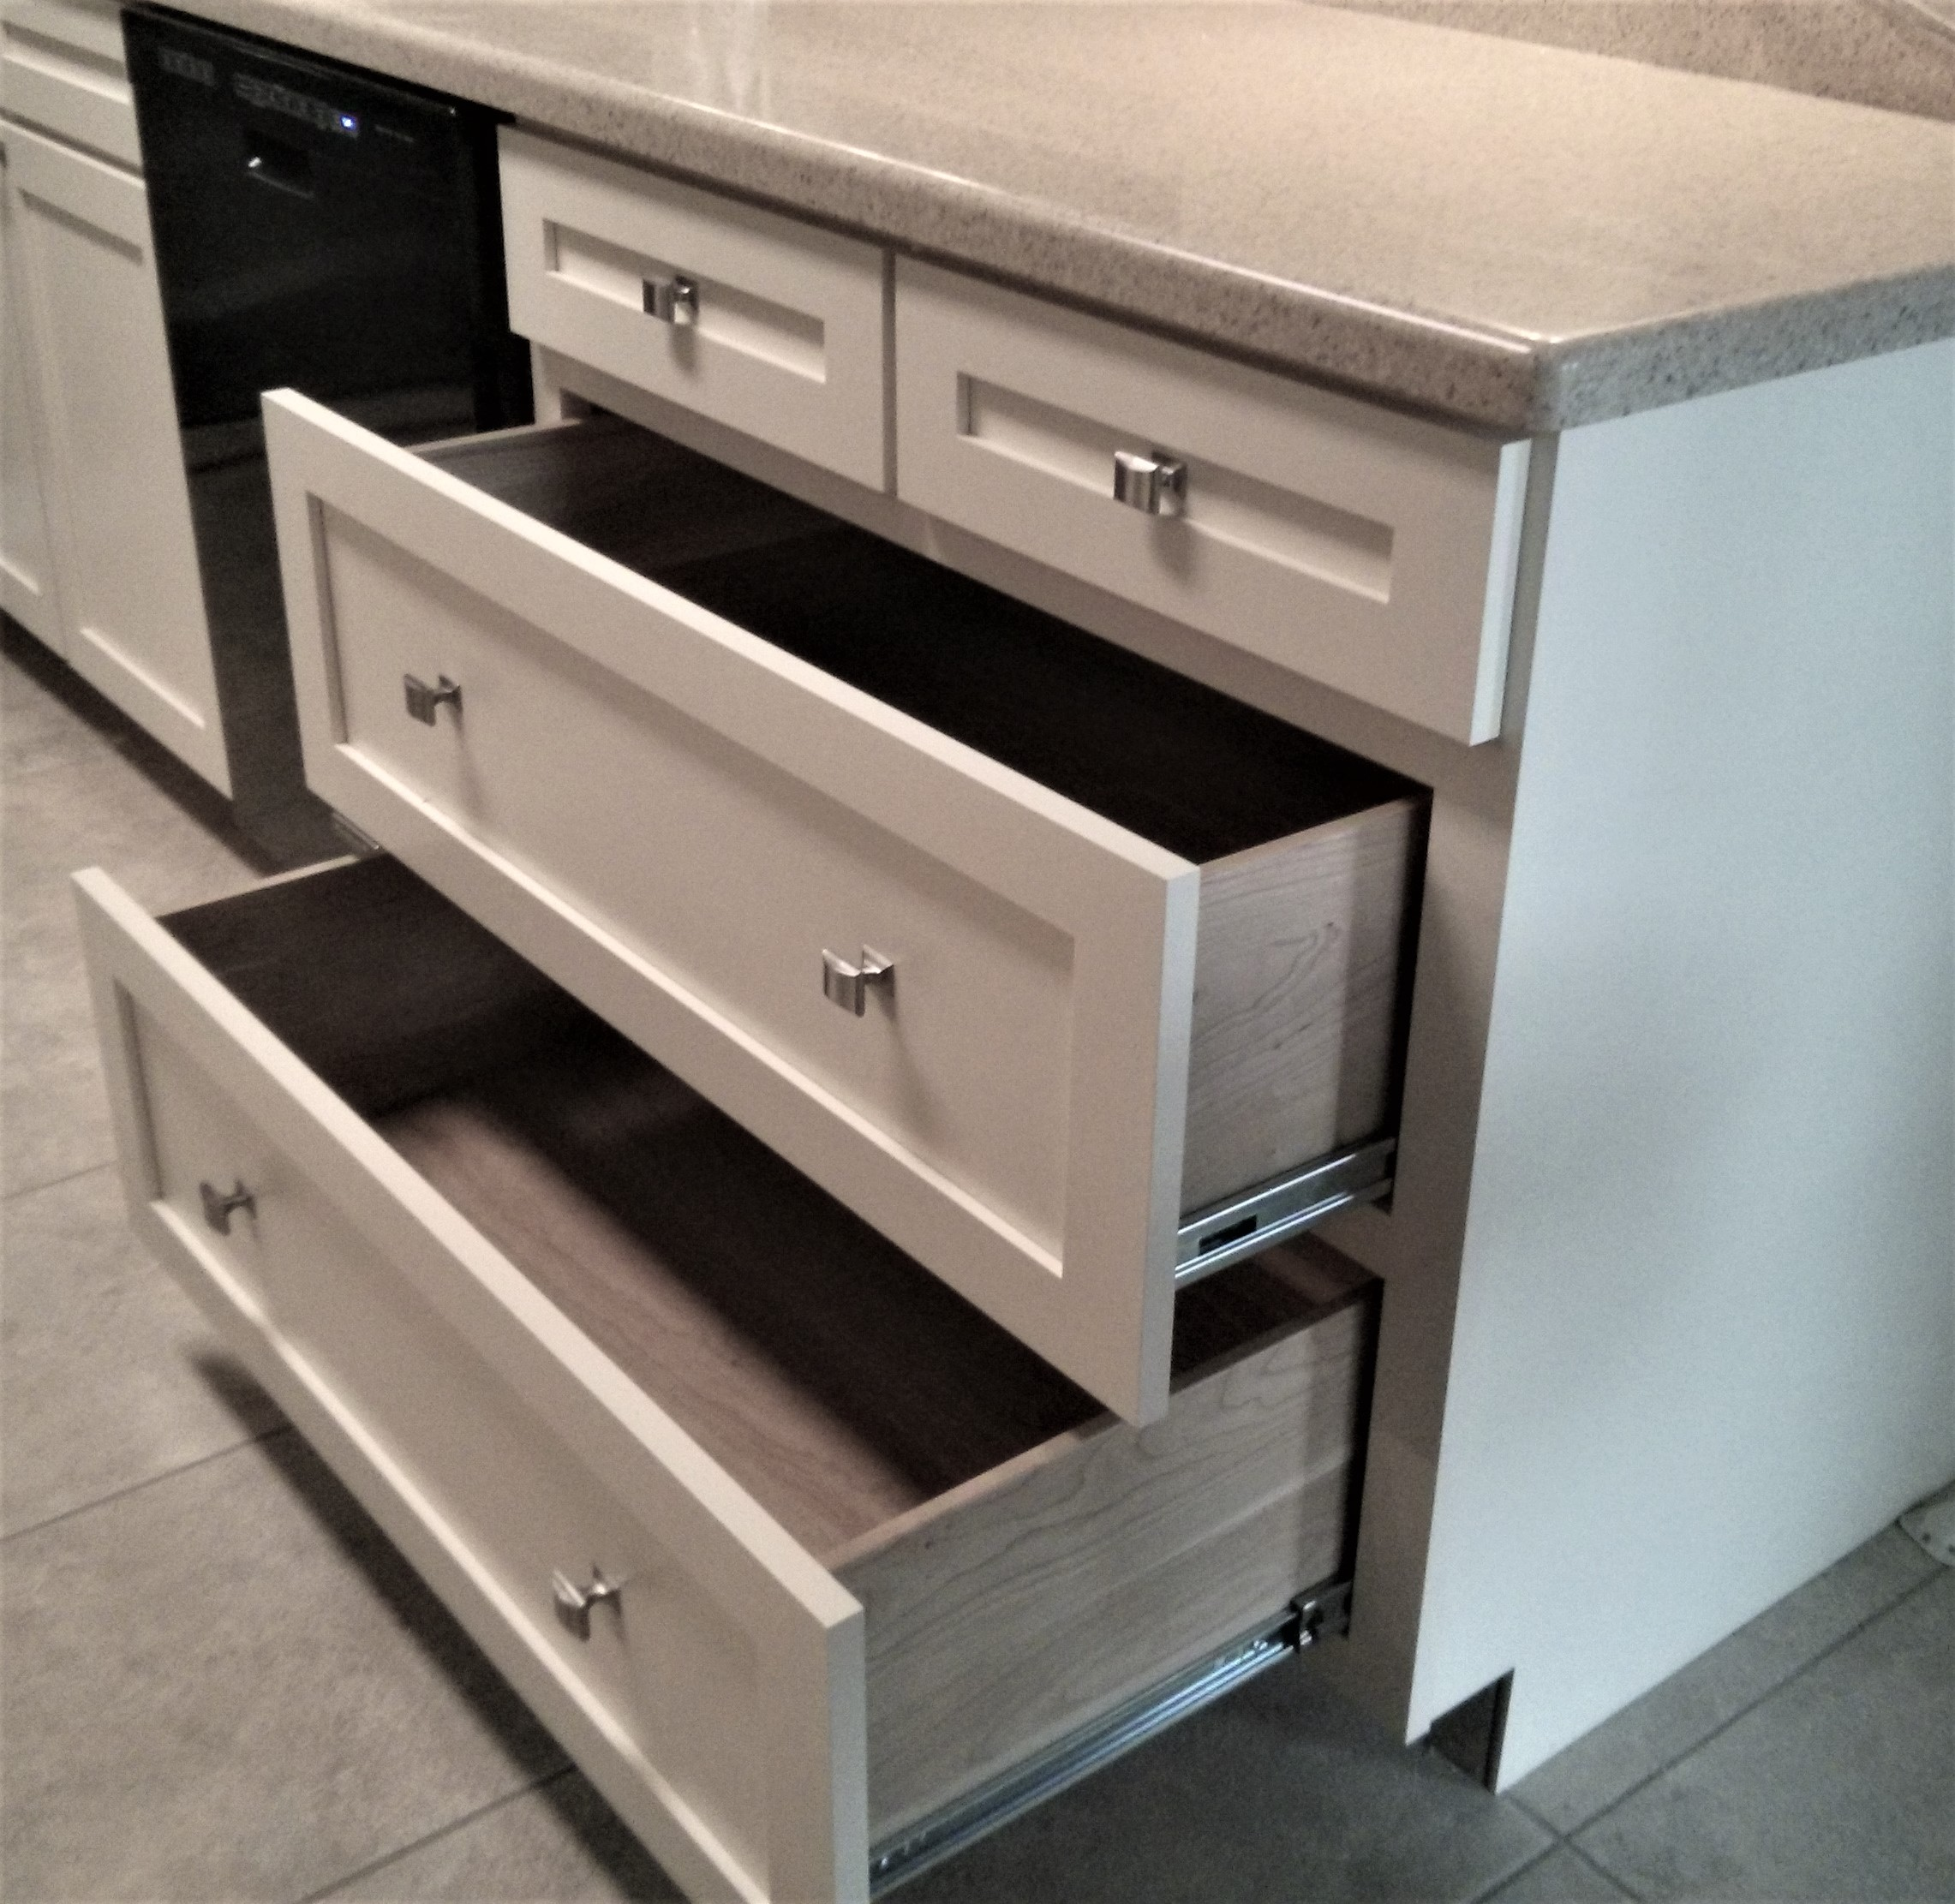 Converting Lower Cabinets to Drawers - Kitchen Craftsman ...